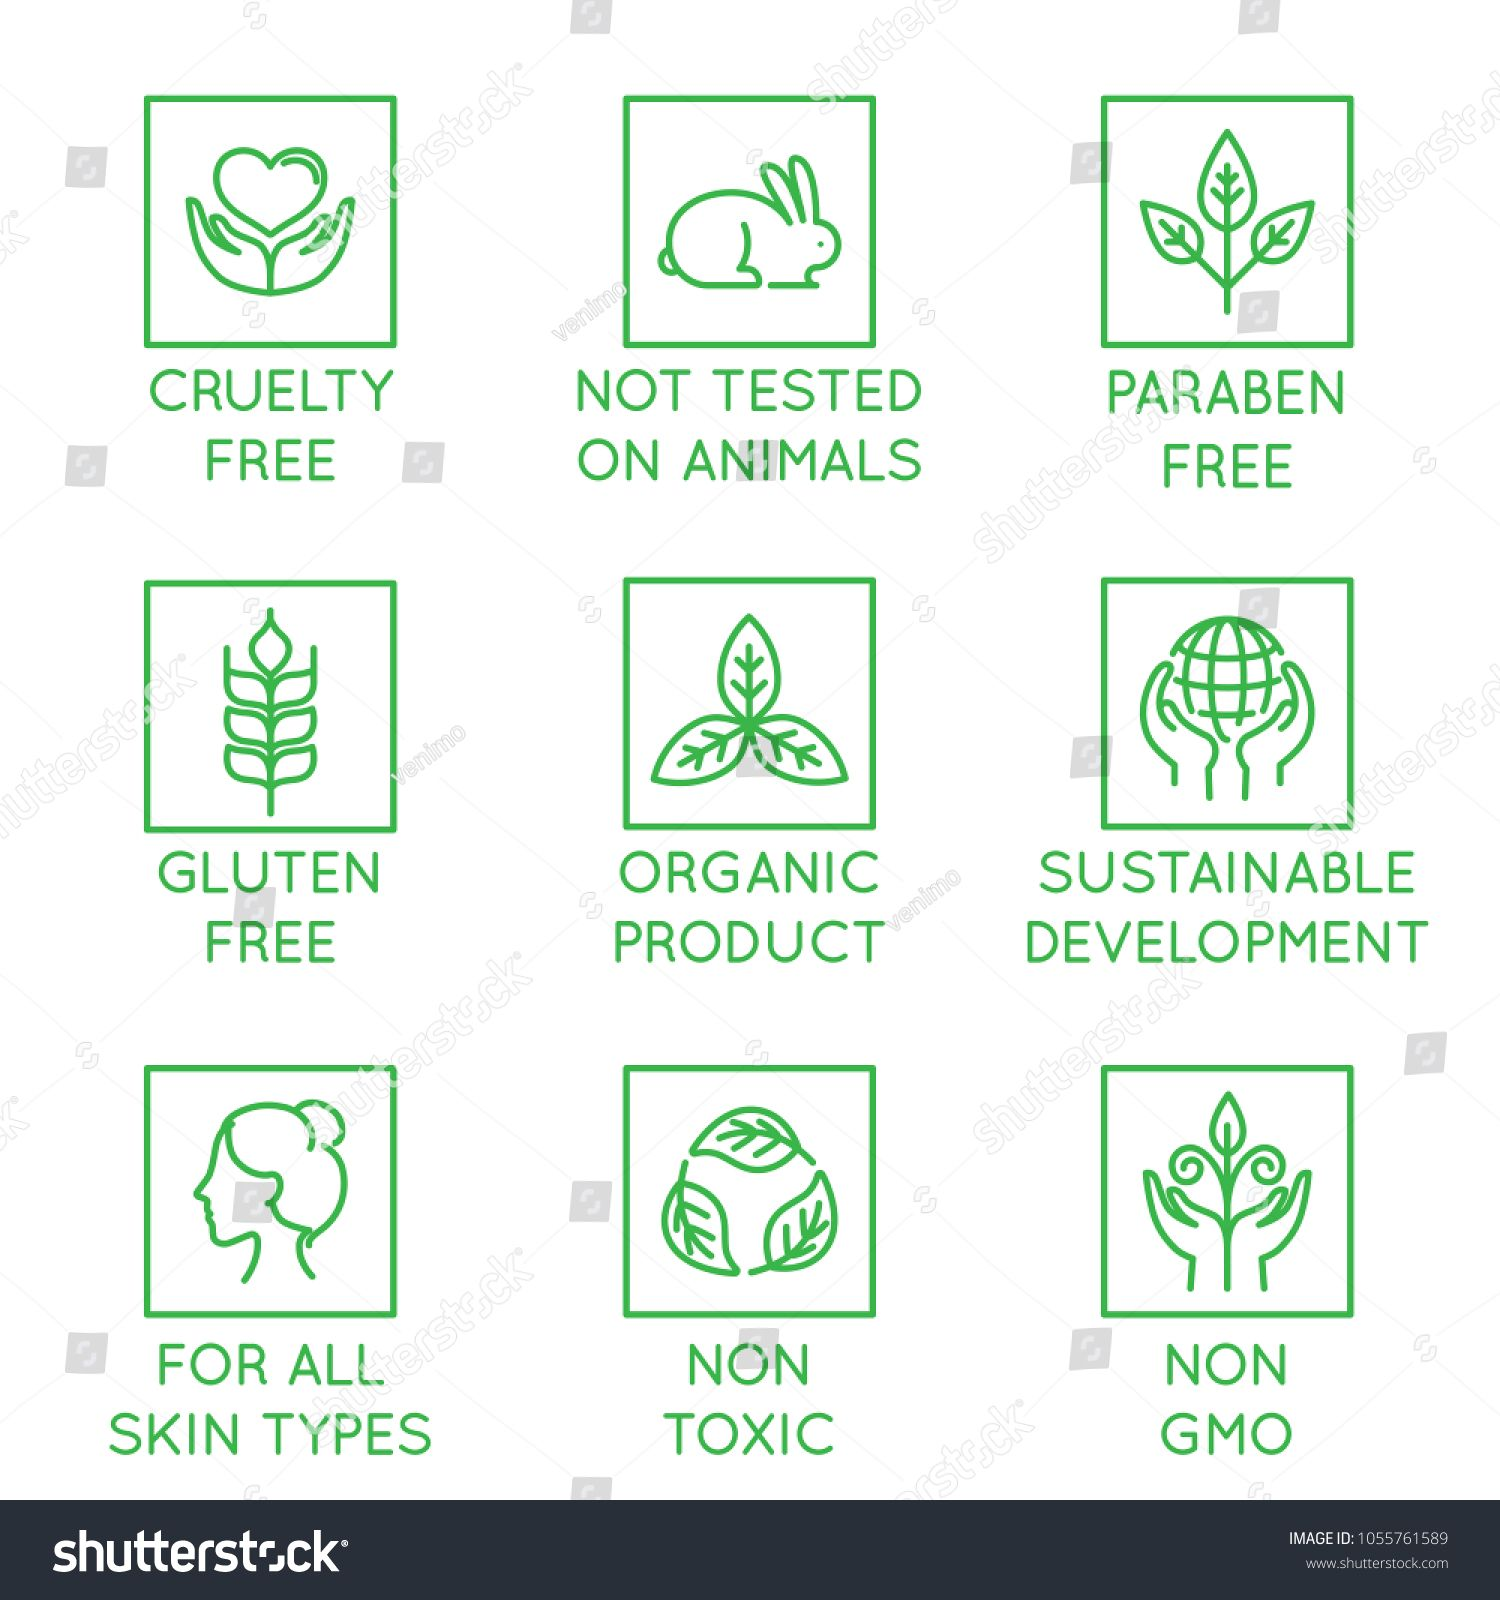 Vector Set Of Design Elements Logo Design Template Icons And Badges For Natural And Organic Cosmetics Paraben Free Products Logo Design Template Logo Design